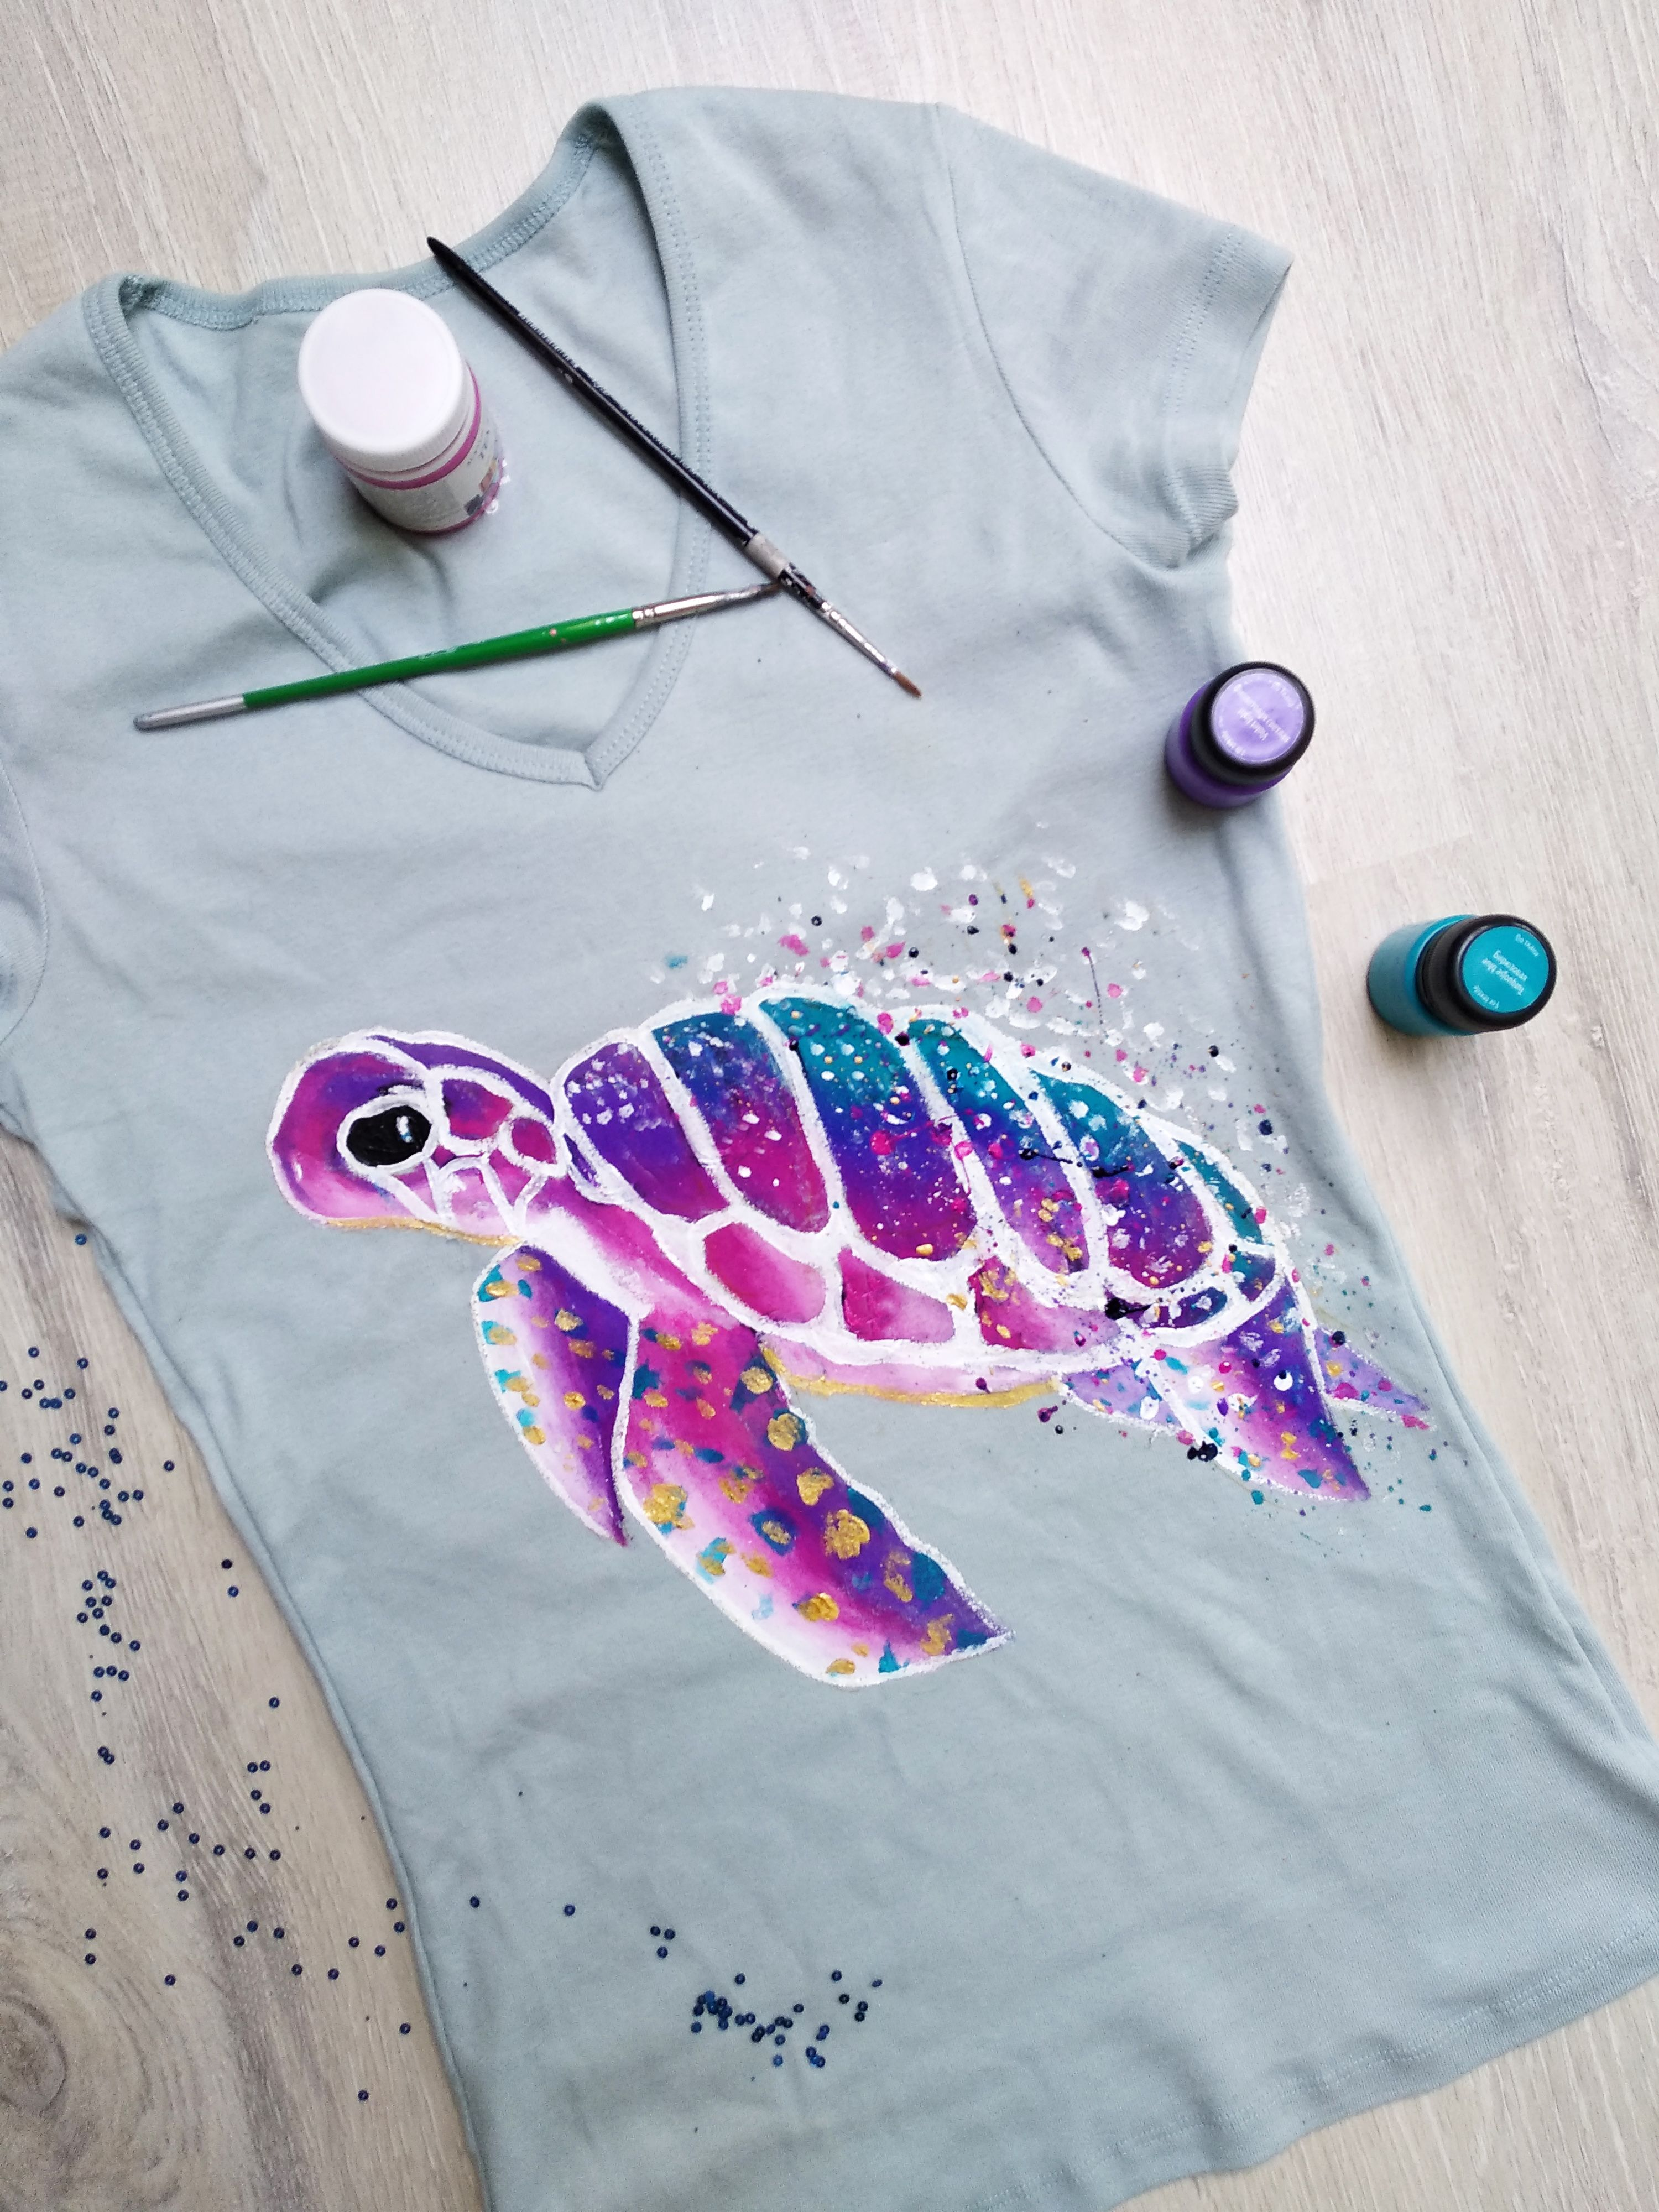 Can You Get Acrylic Paint Out Of Clothes Acrylic Painting On T Shirt Fabric Painting Techniques Fabric Paint Diy Diy Techniques And Supplies